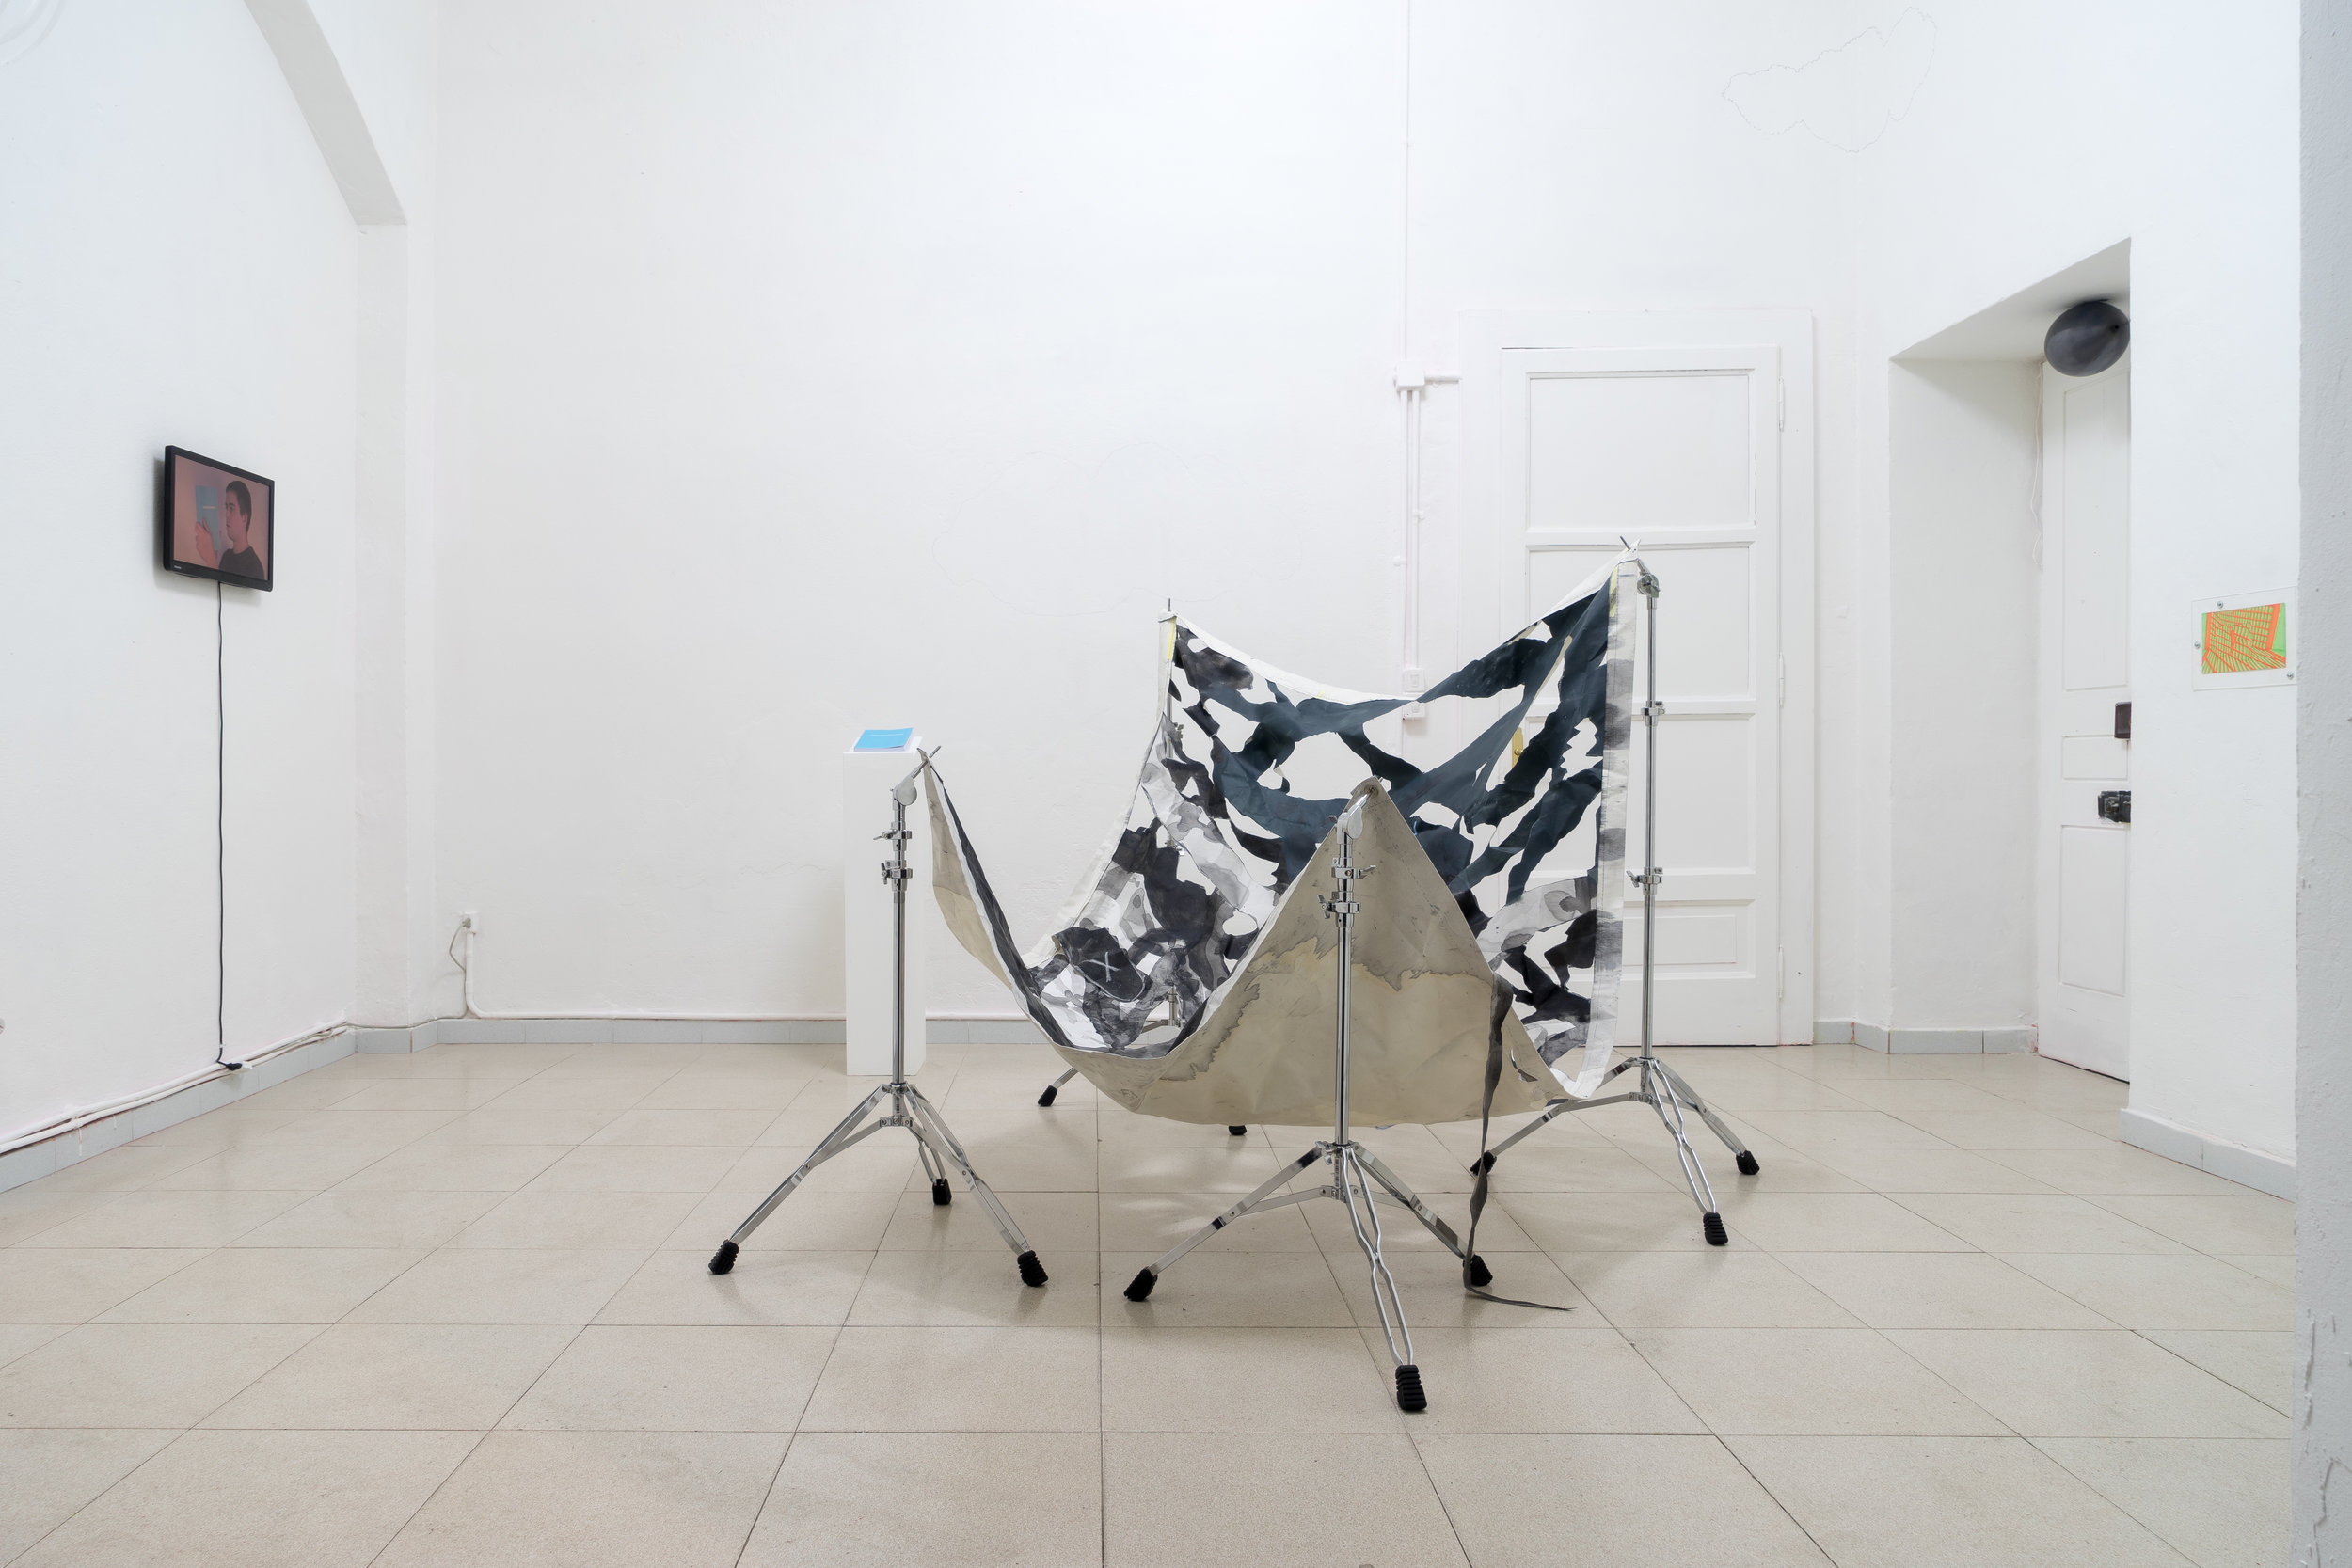 the-theory-of-clouds-spaziobuonasera-44-installation-view.jpg